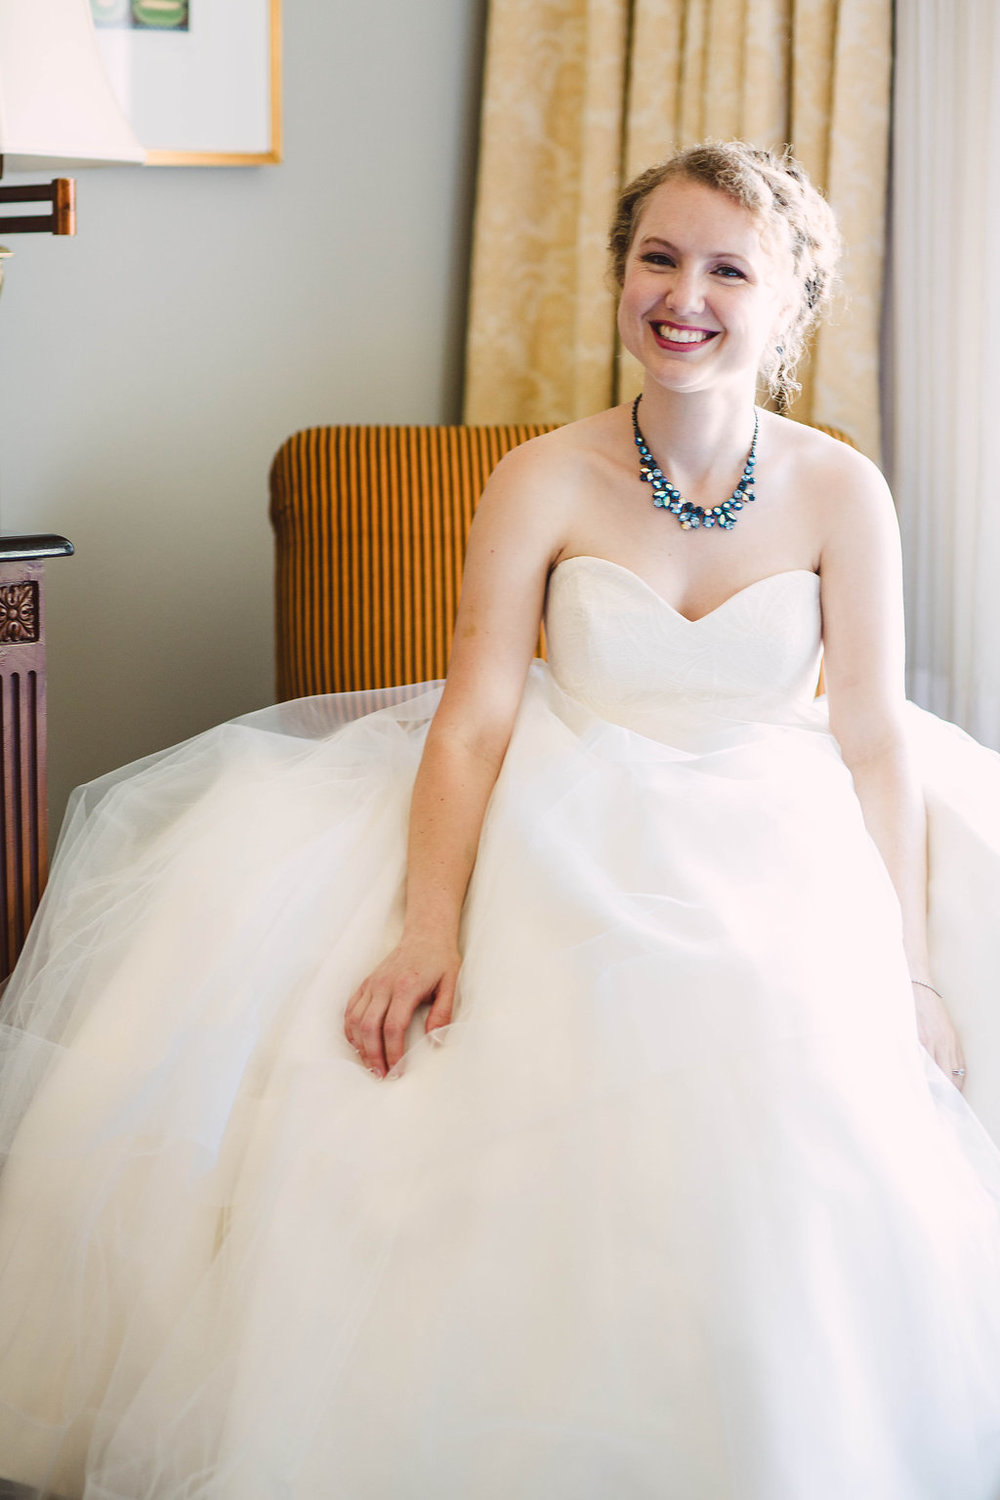 Nissa+Jesse_Wedding_Seattle_SoleRepairShop_6252015_38.jpg